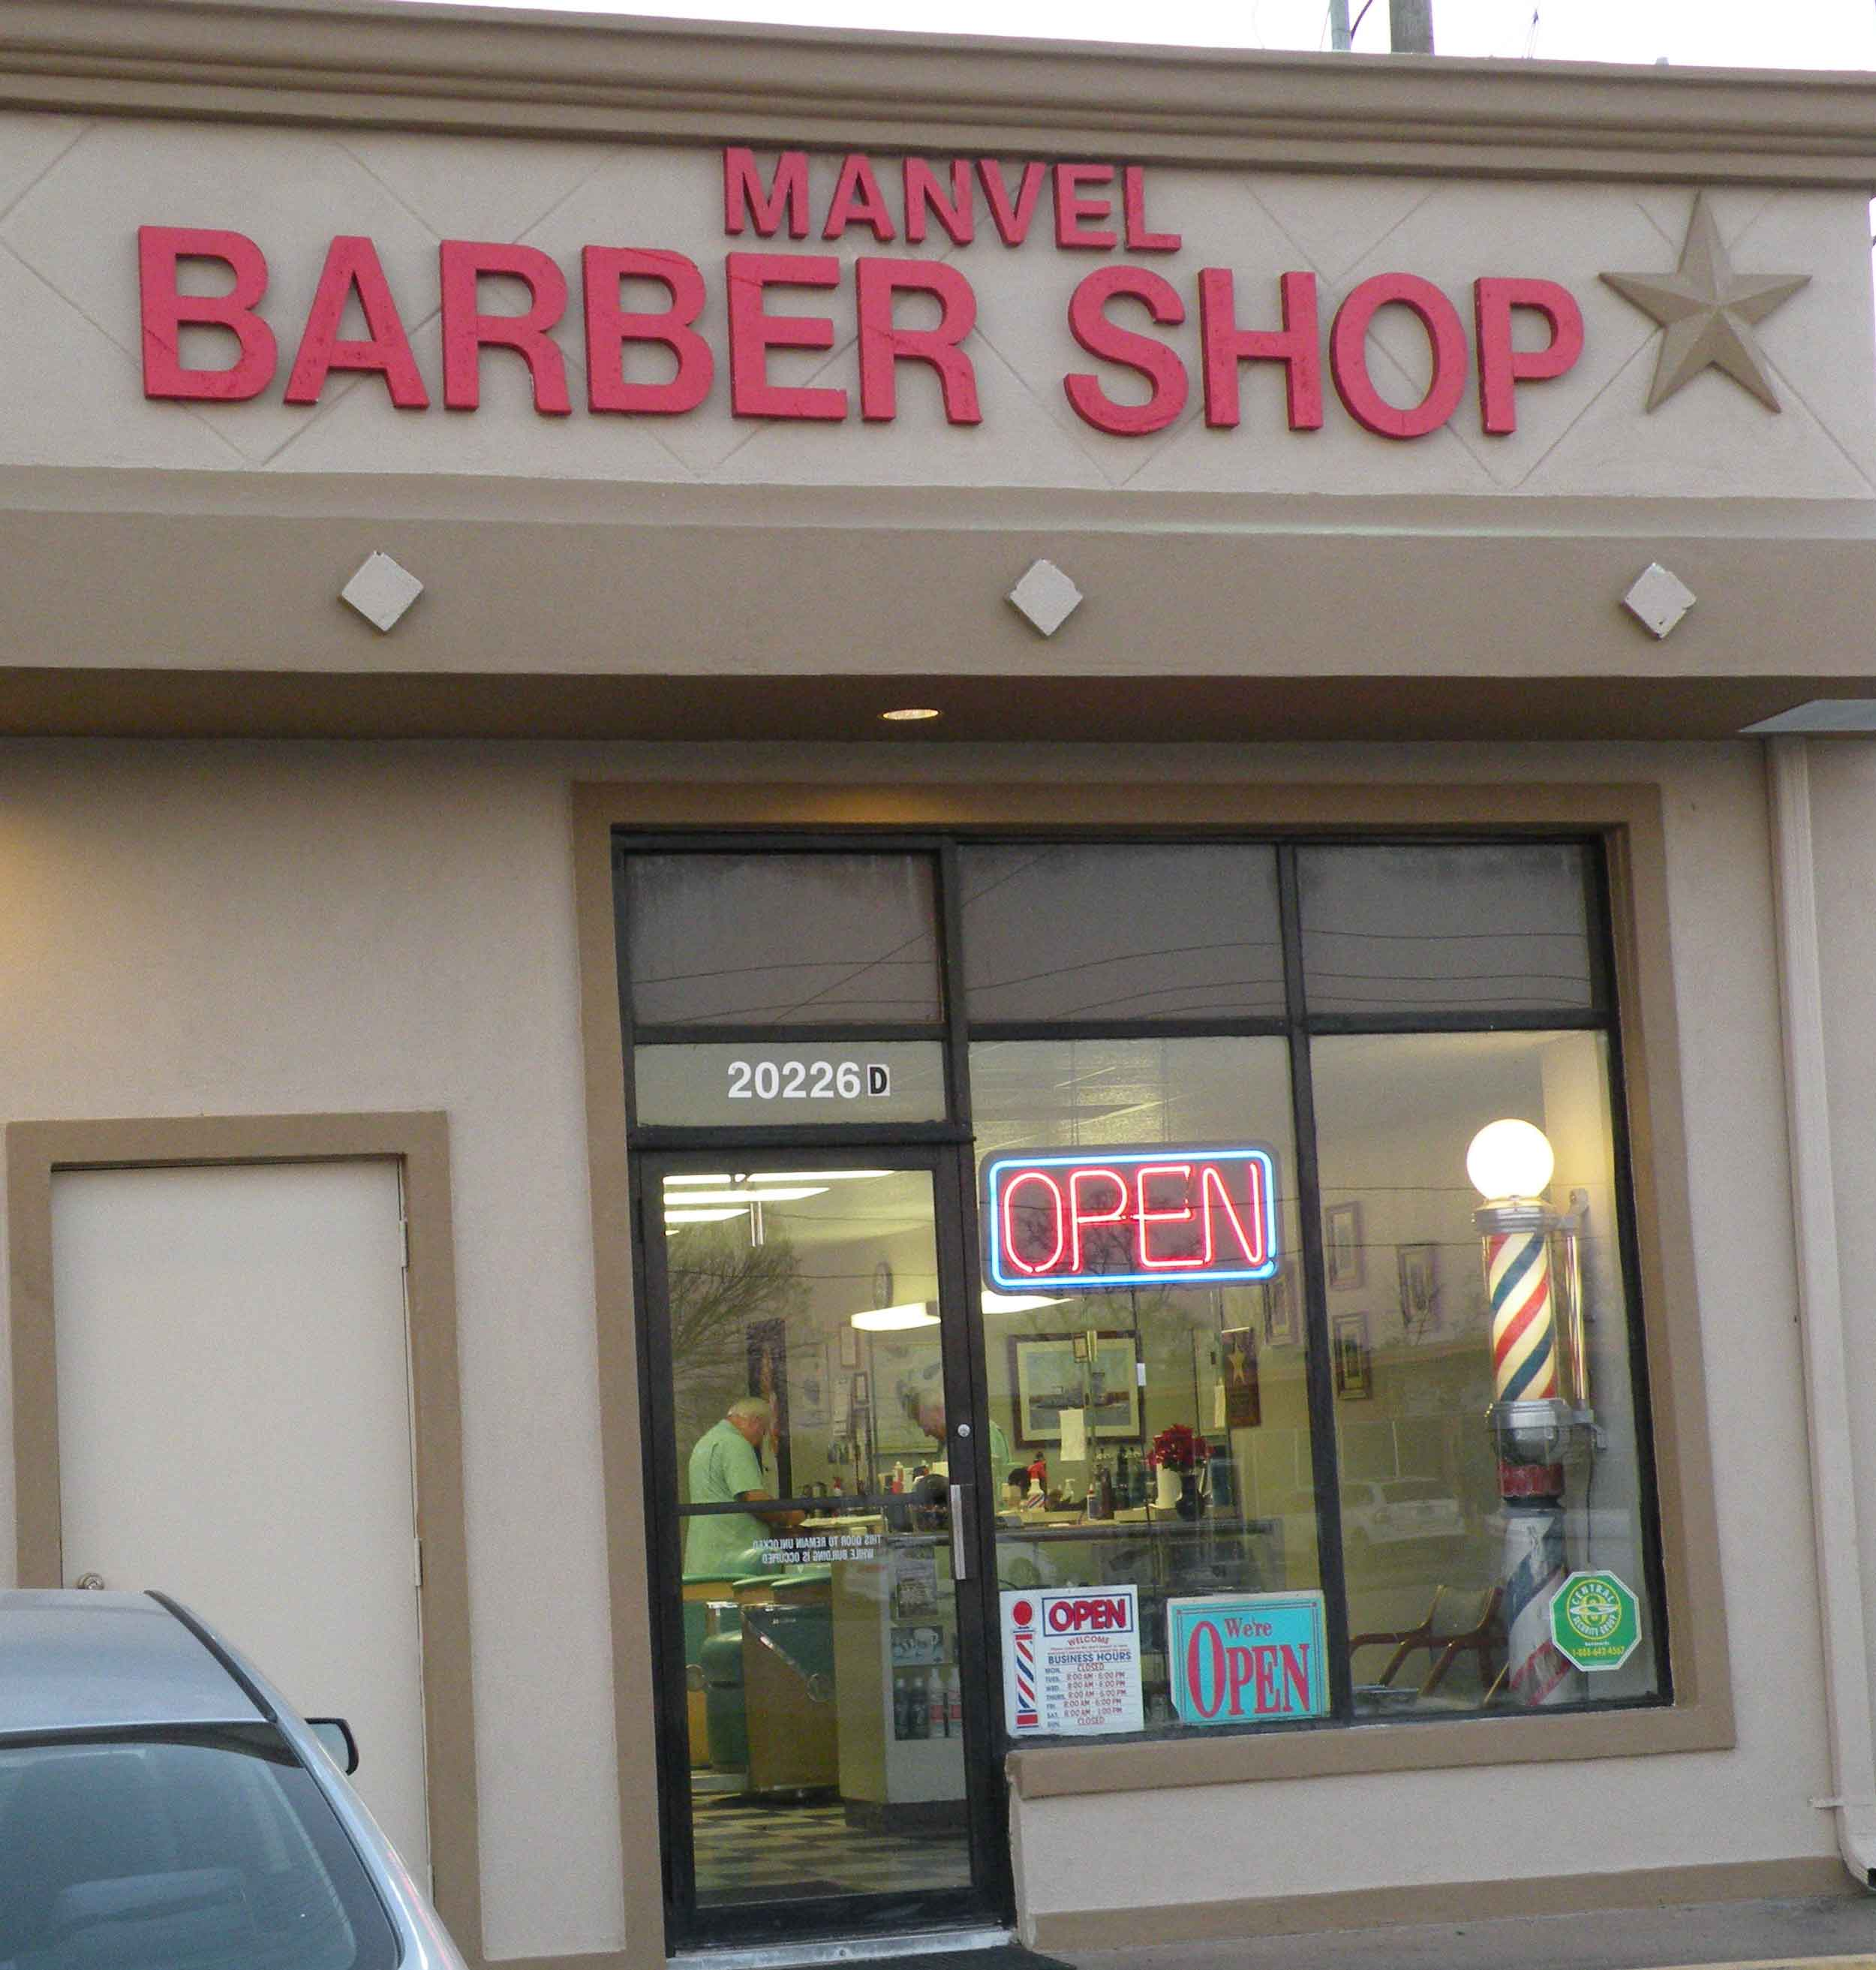 Manvel Barber Shop Front Entrance